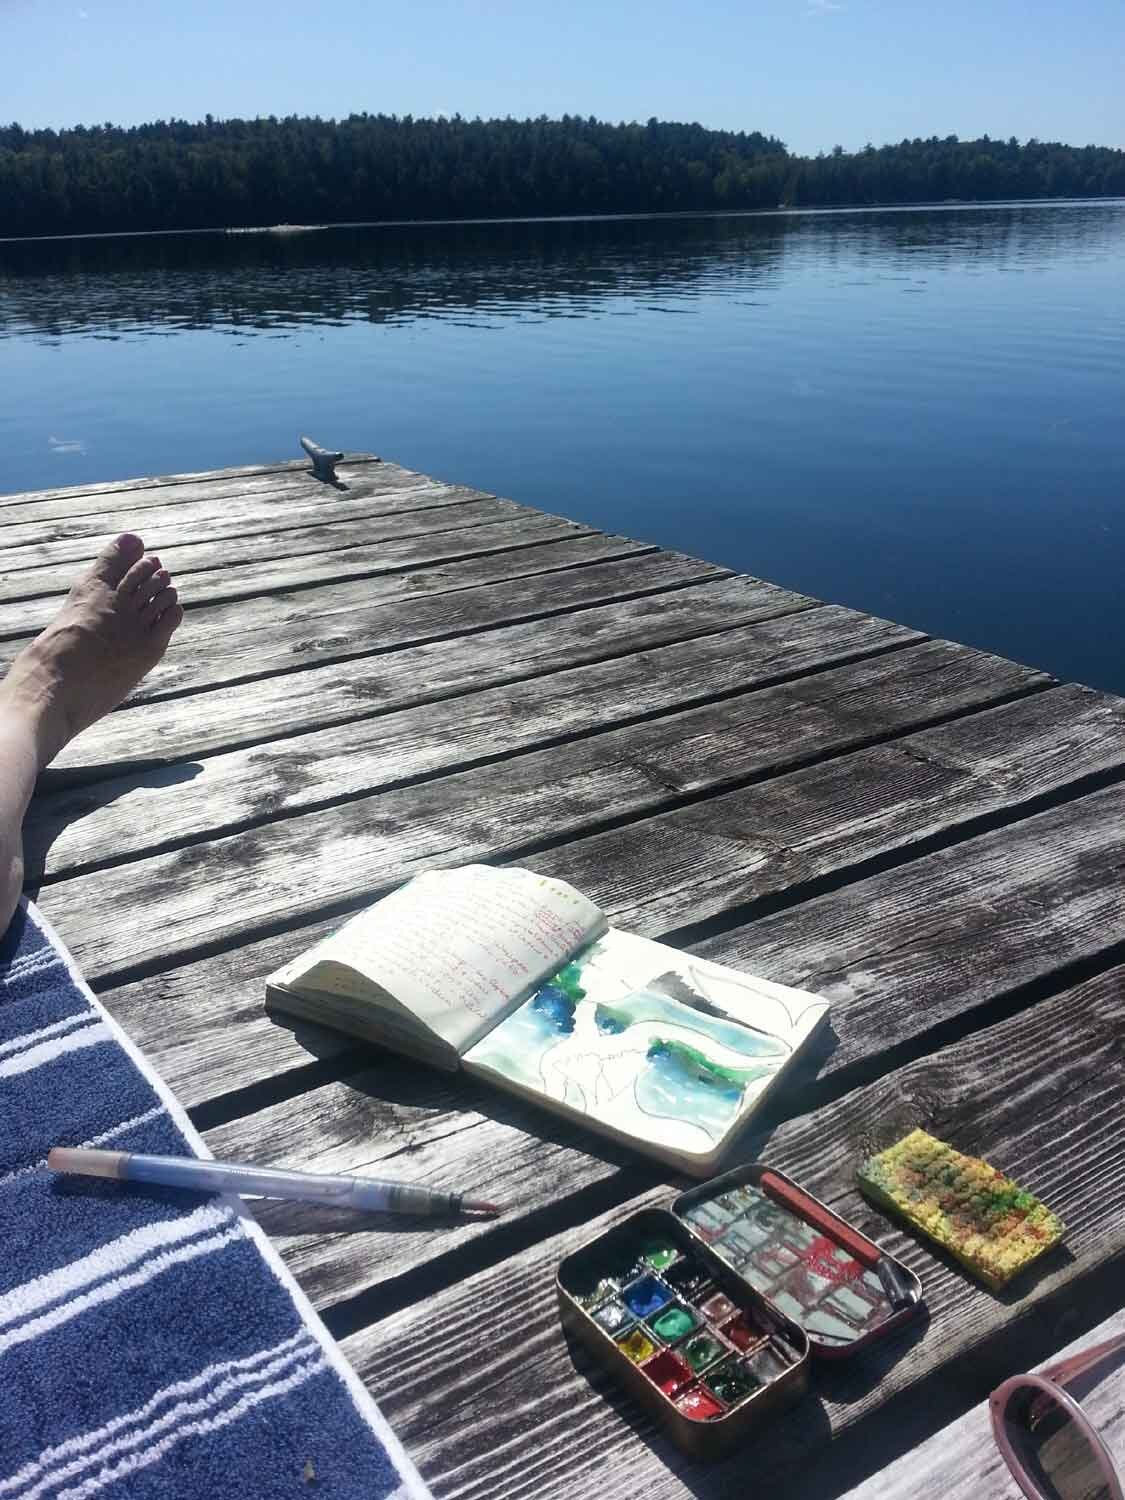 Painting with watercolors on the dock